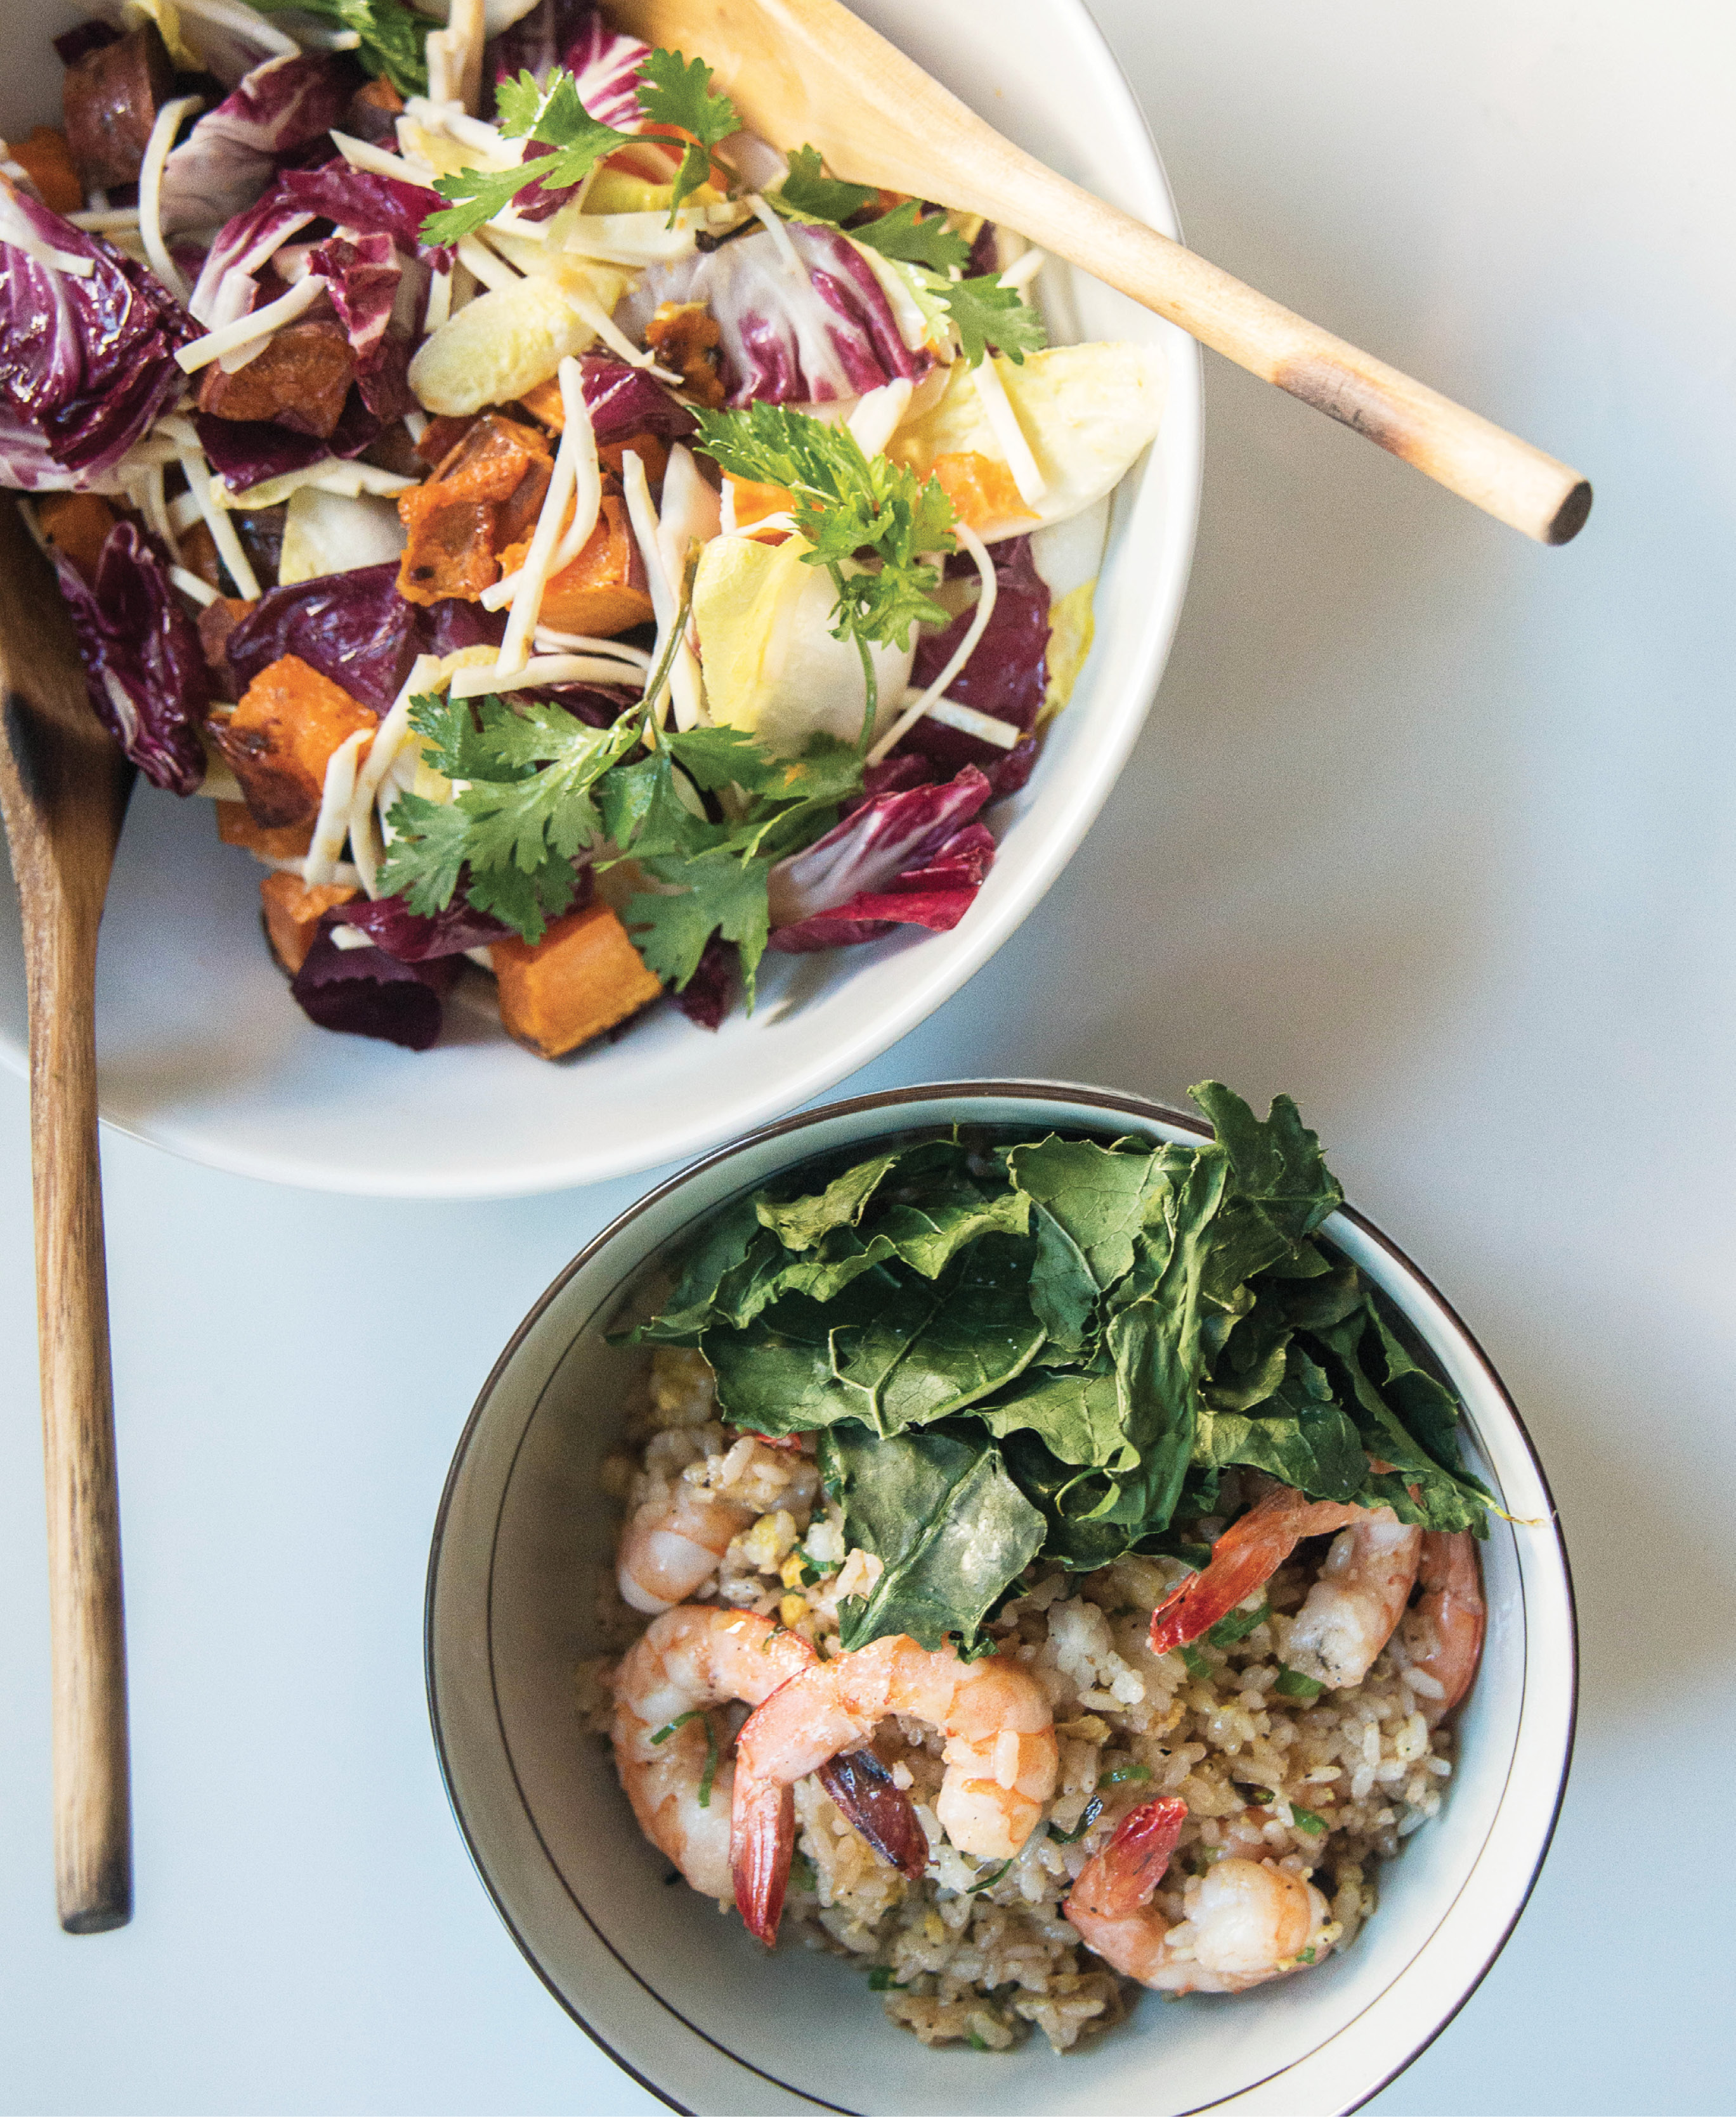 Bowls of the celery root and sweet potato salad and shrimp fried rice; Walker and Li top the rice with crispy baked kale, a healthier alternative to deep- fried garnishes.